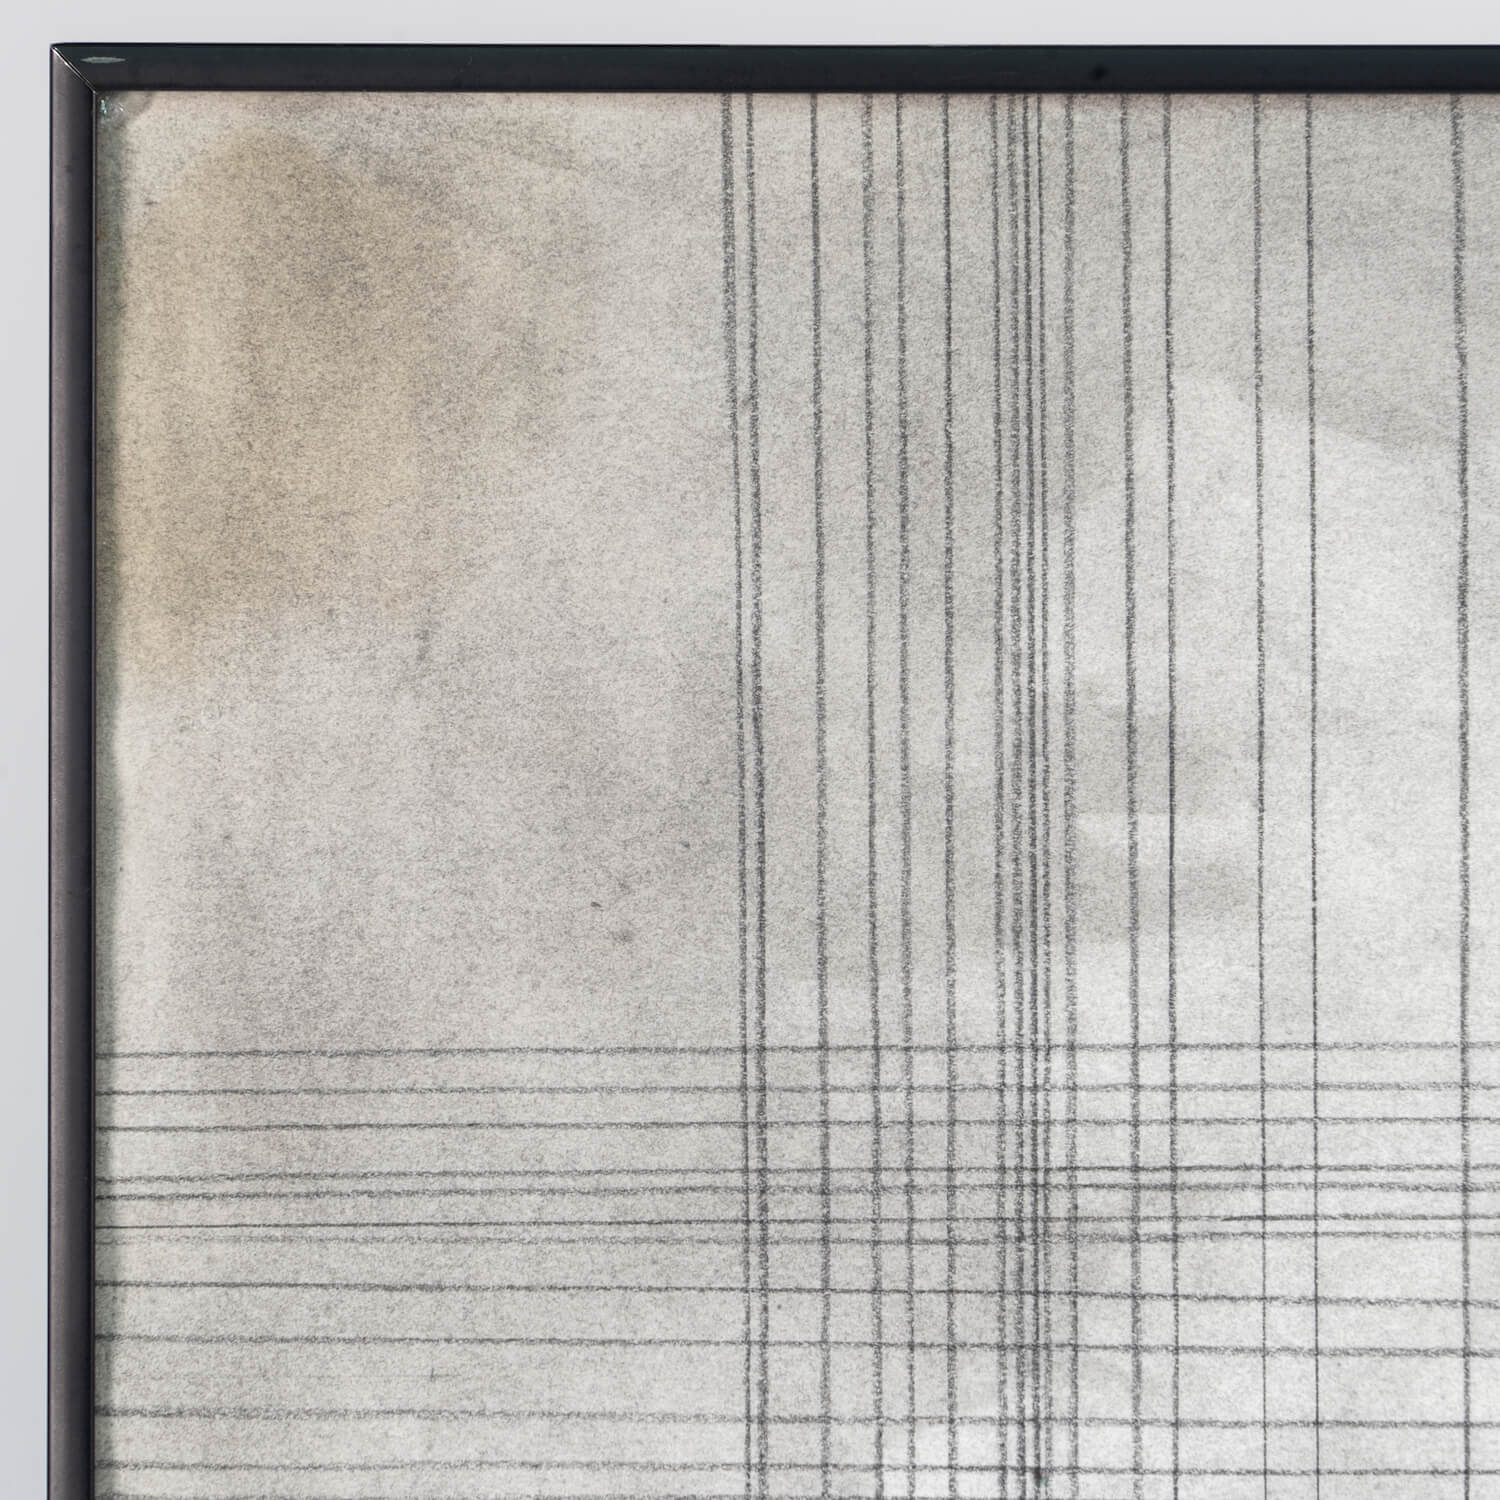 Abstract Graphite Drawing, Dated 77, Signed S Pogano